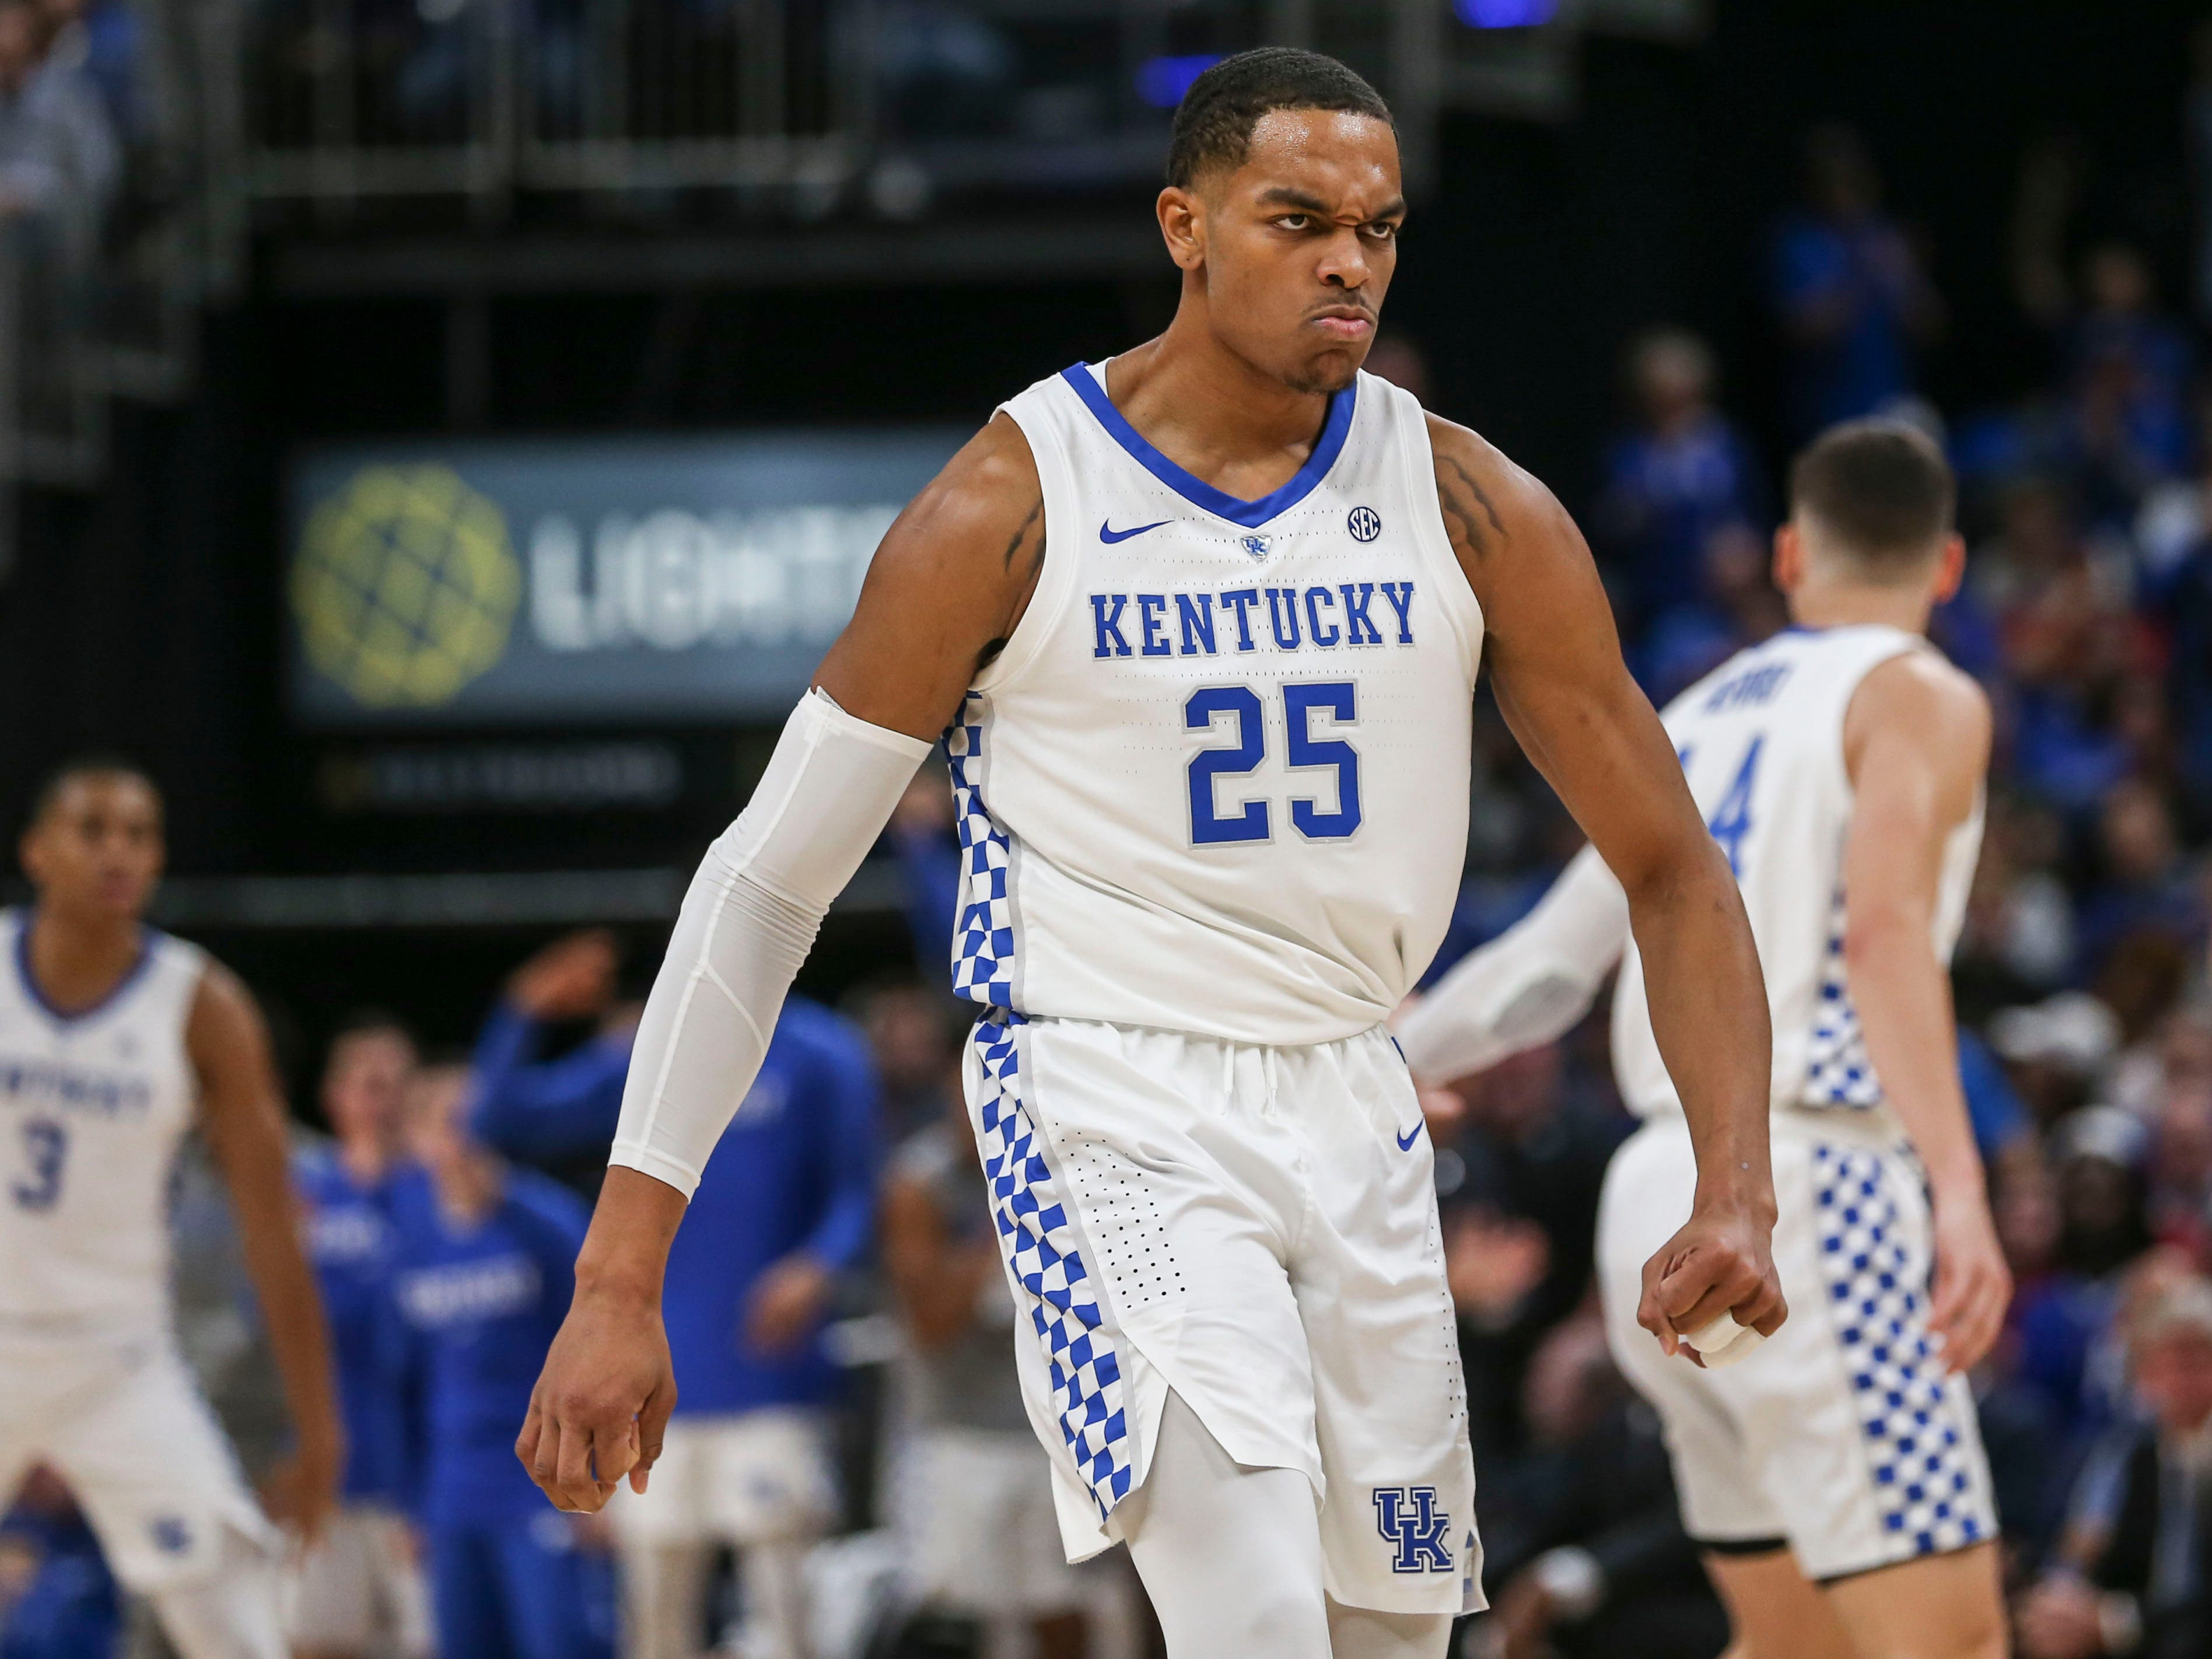 Kentucky's PJ Washington's look of determination was evident early in the game against Duke Nov. 6, 2018. He finished the game with eight points and two rebounds.